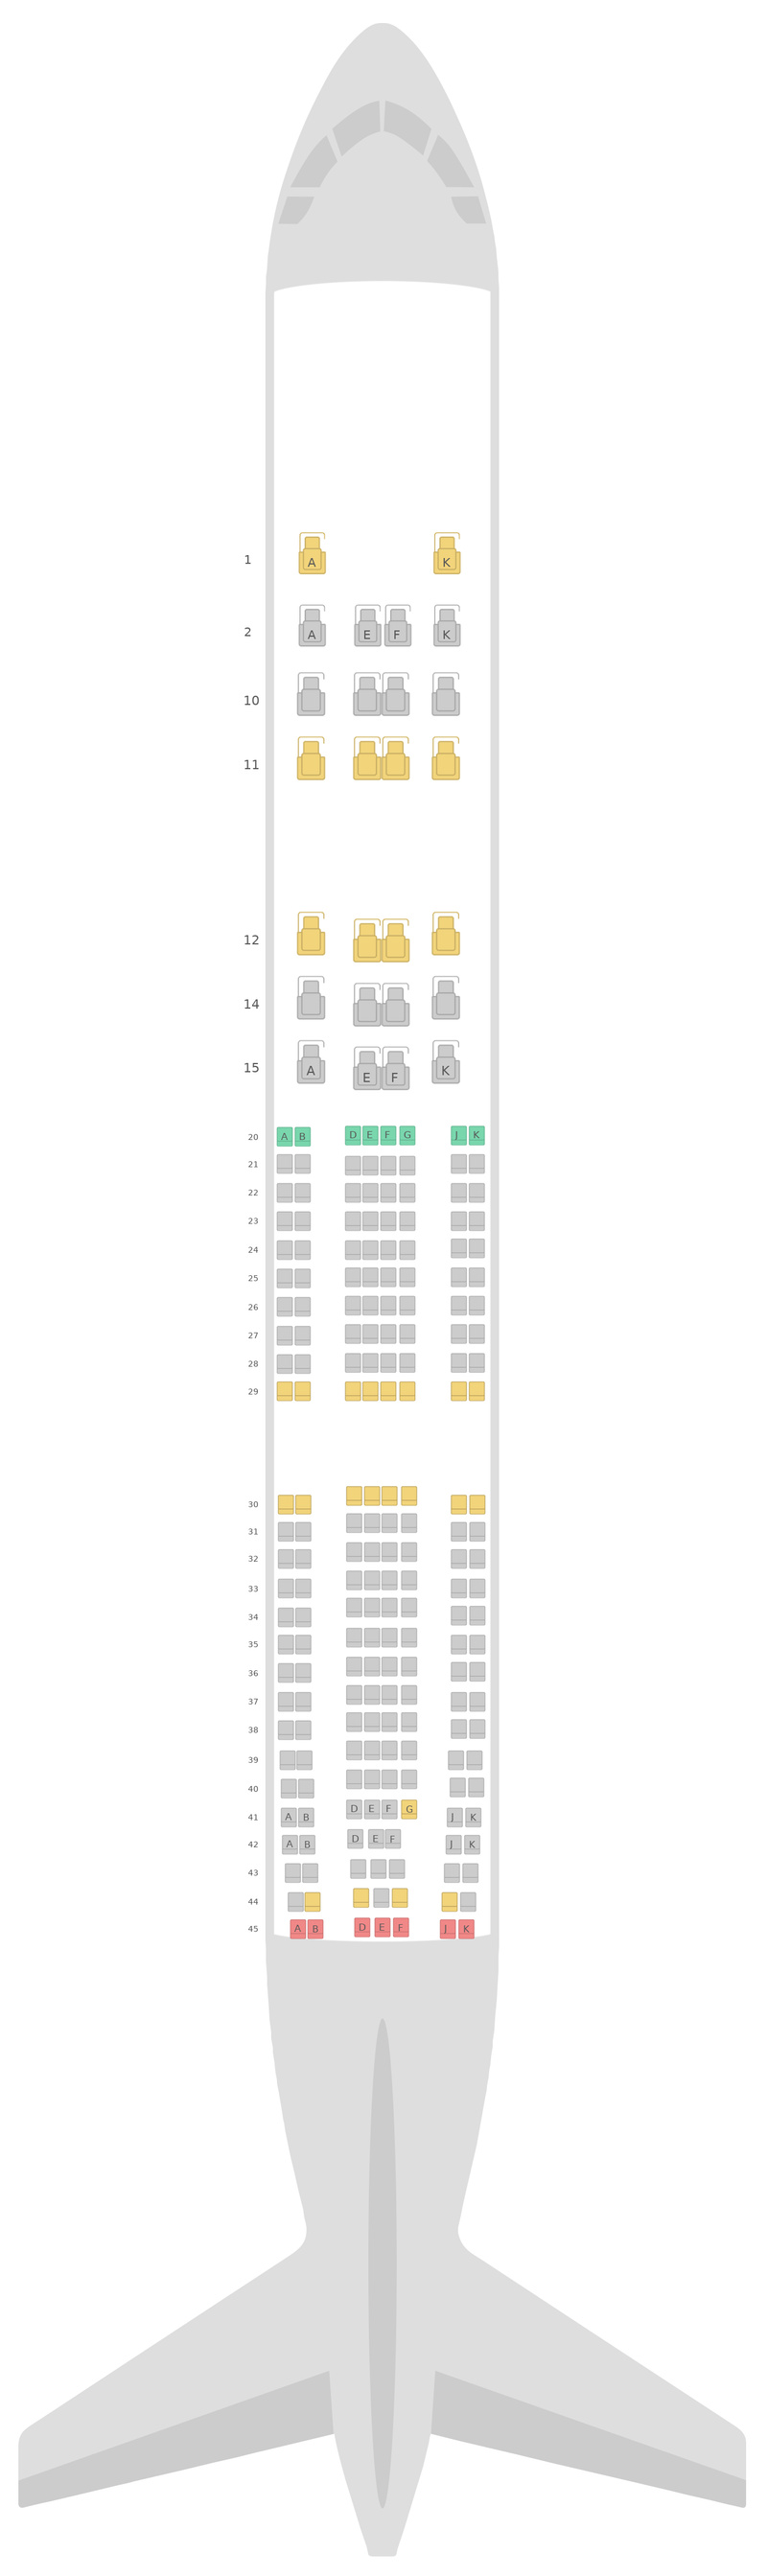 Seat Map Oman Air Airbus A330-300 (333) 3 Class